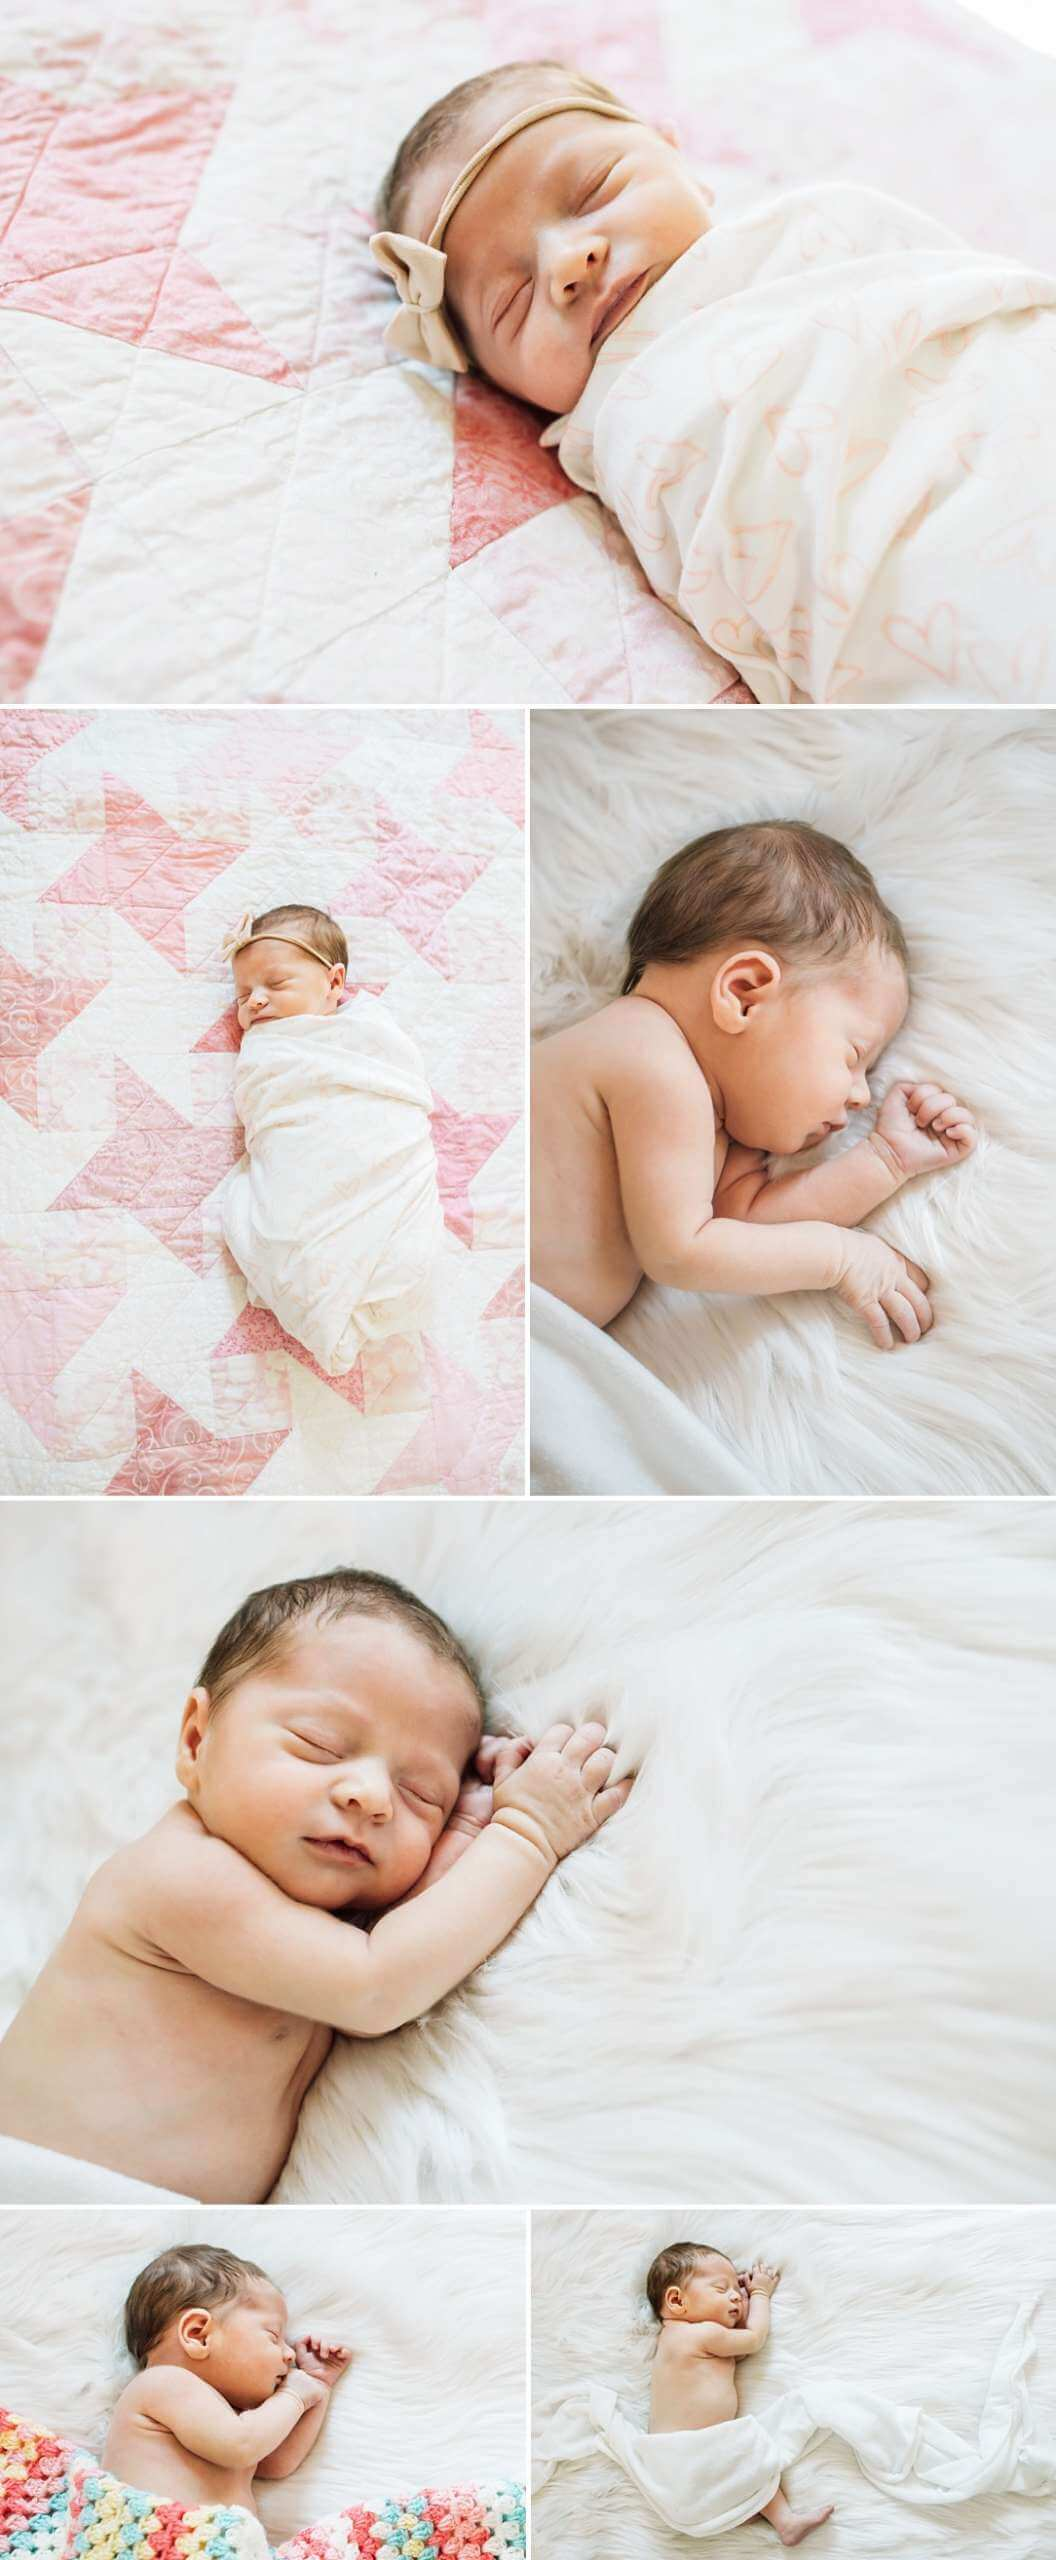 natural poses of newborn baby girl